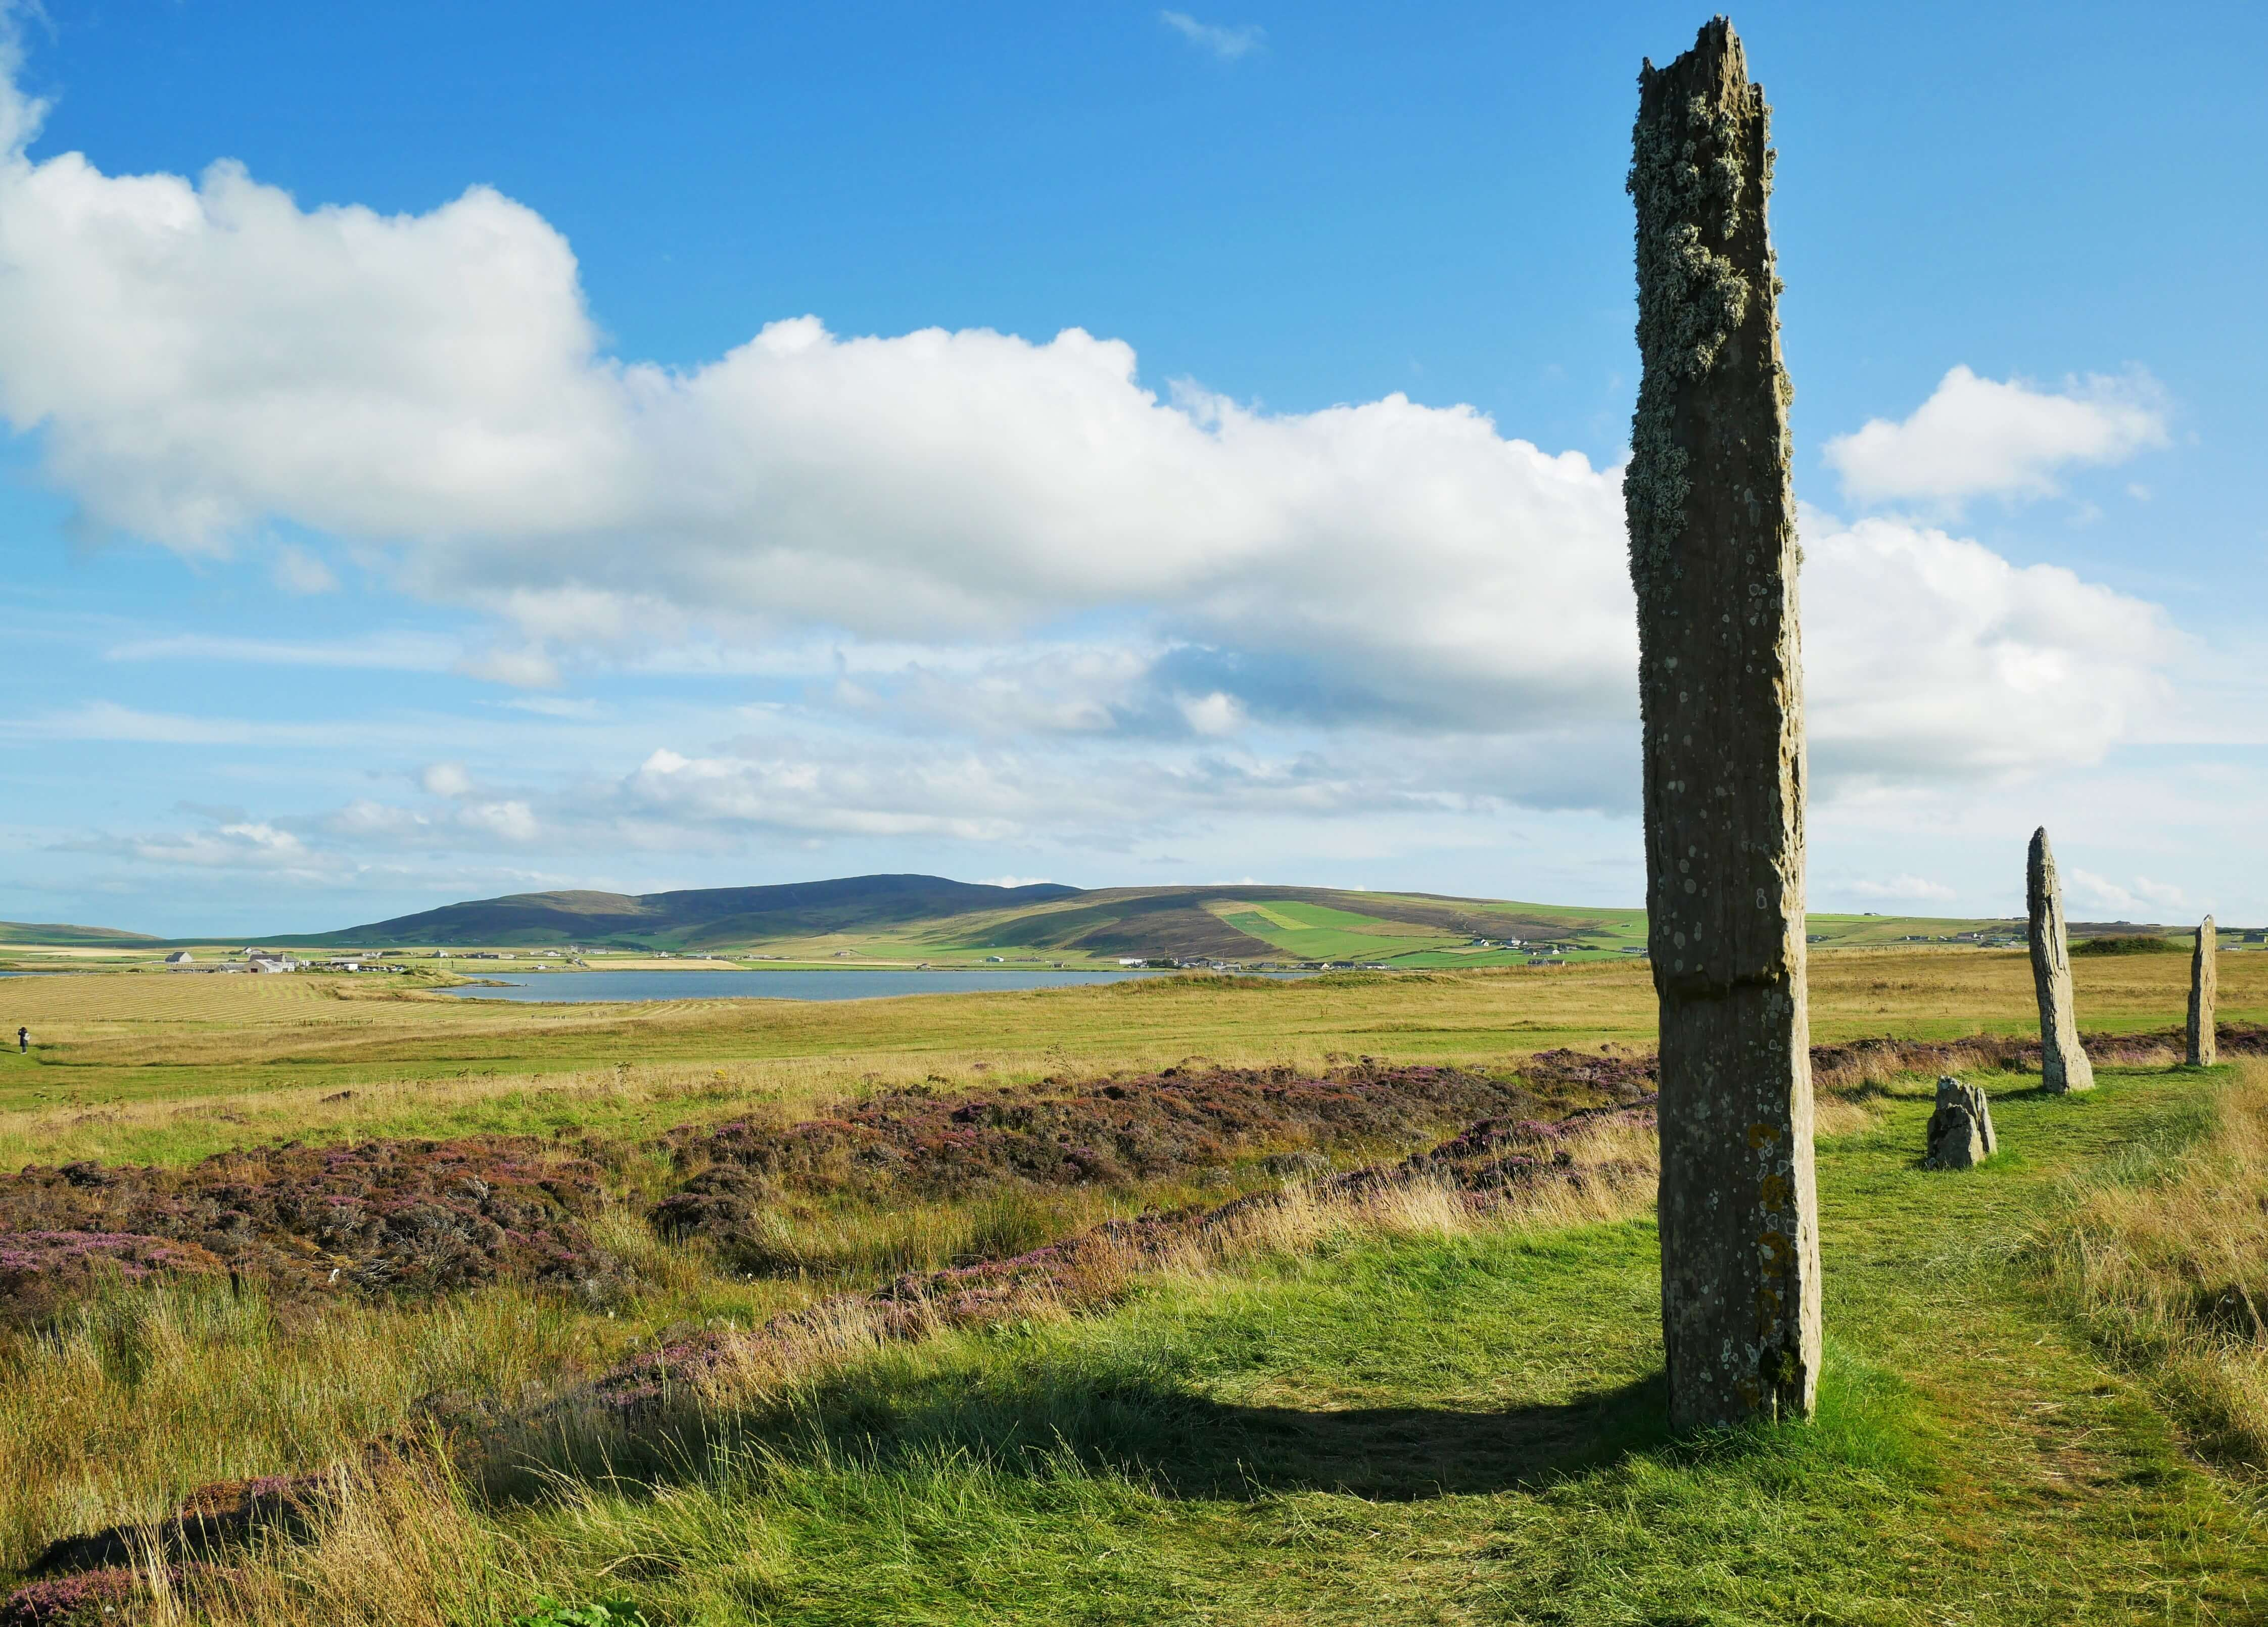 Inspiring view at Orkney's famous standing stones at Brodgar.  Orkney Islands, Scotland, UK. www.orkneyology.com